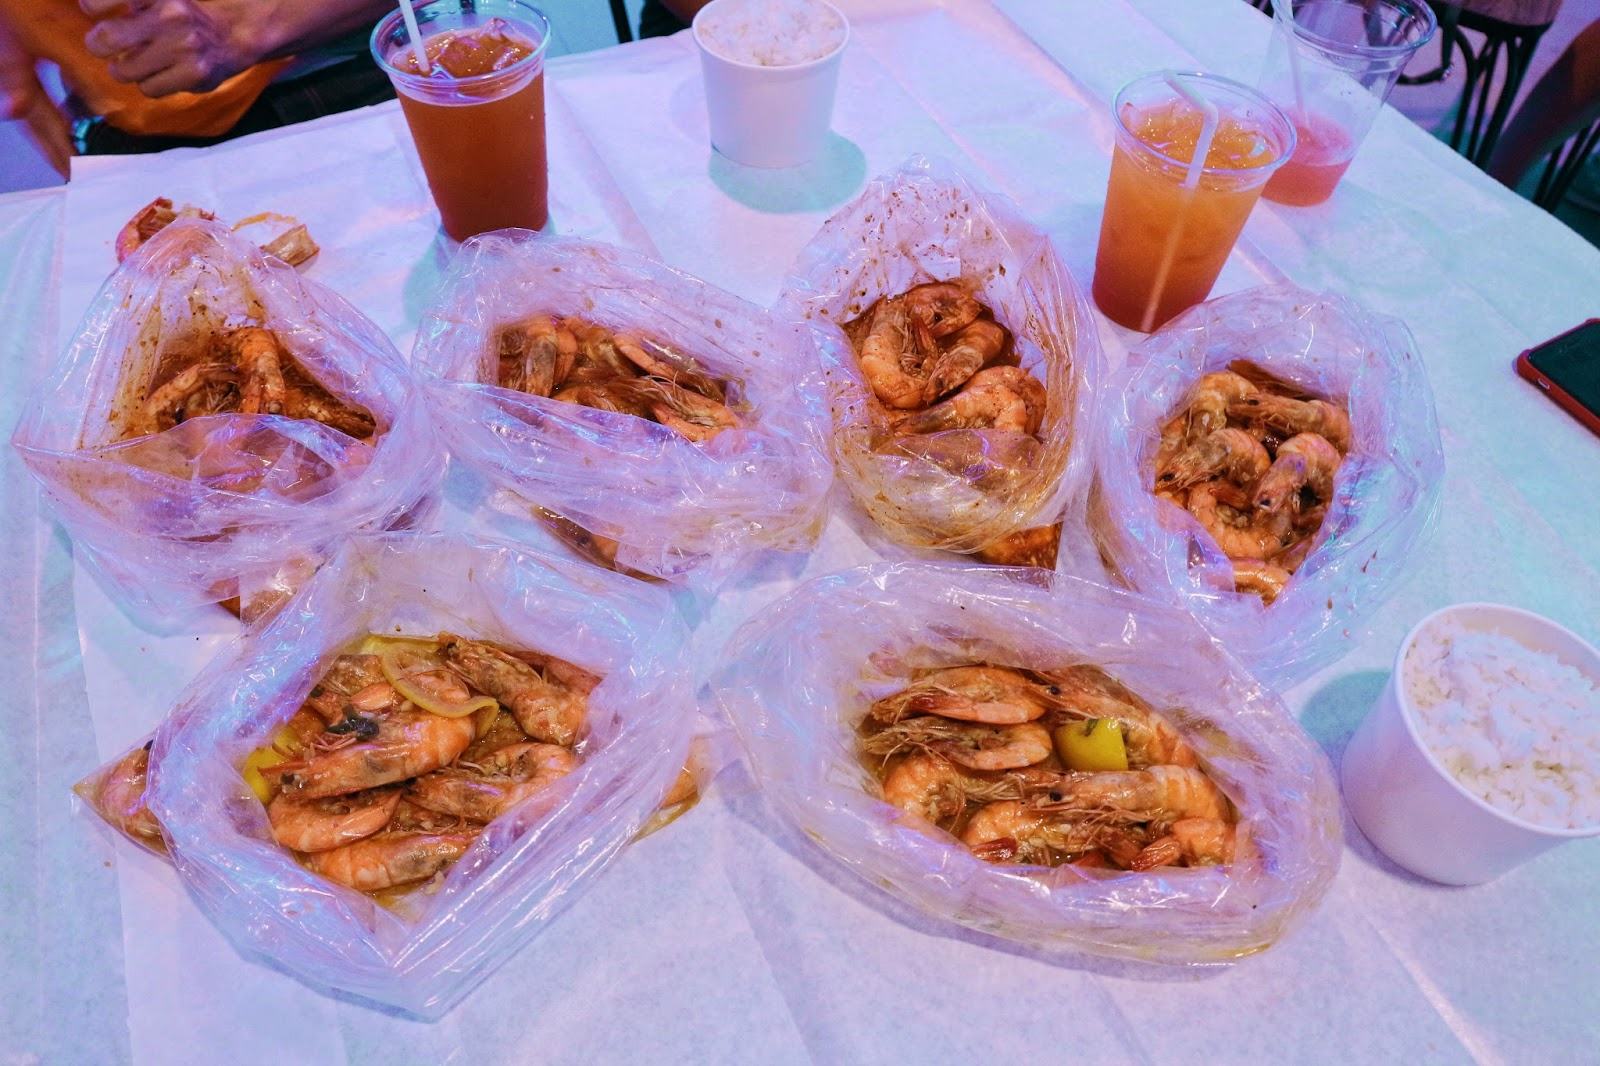 Unlimited shrimps at Blue Posts for only P911 for 2